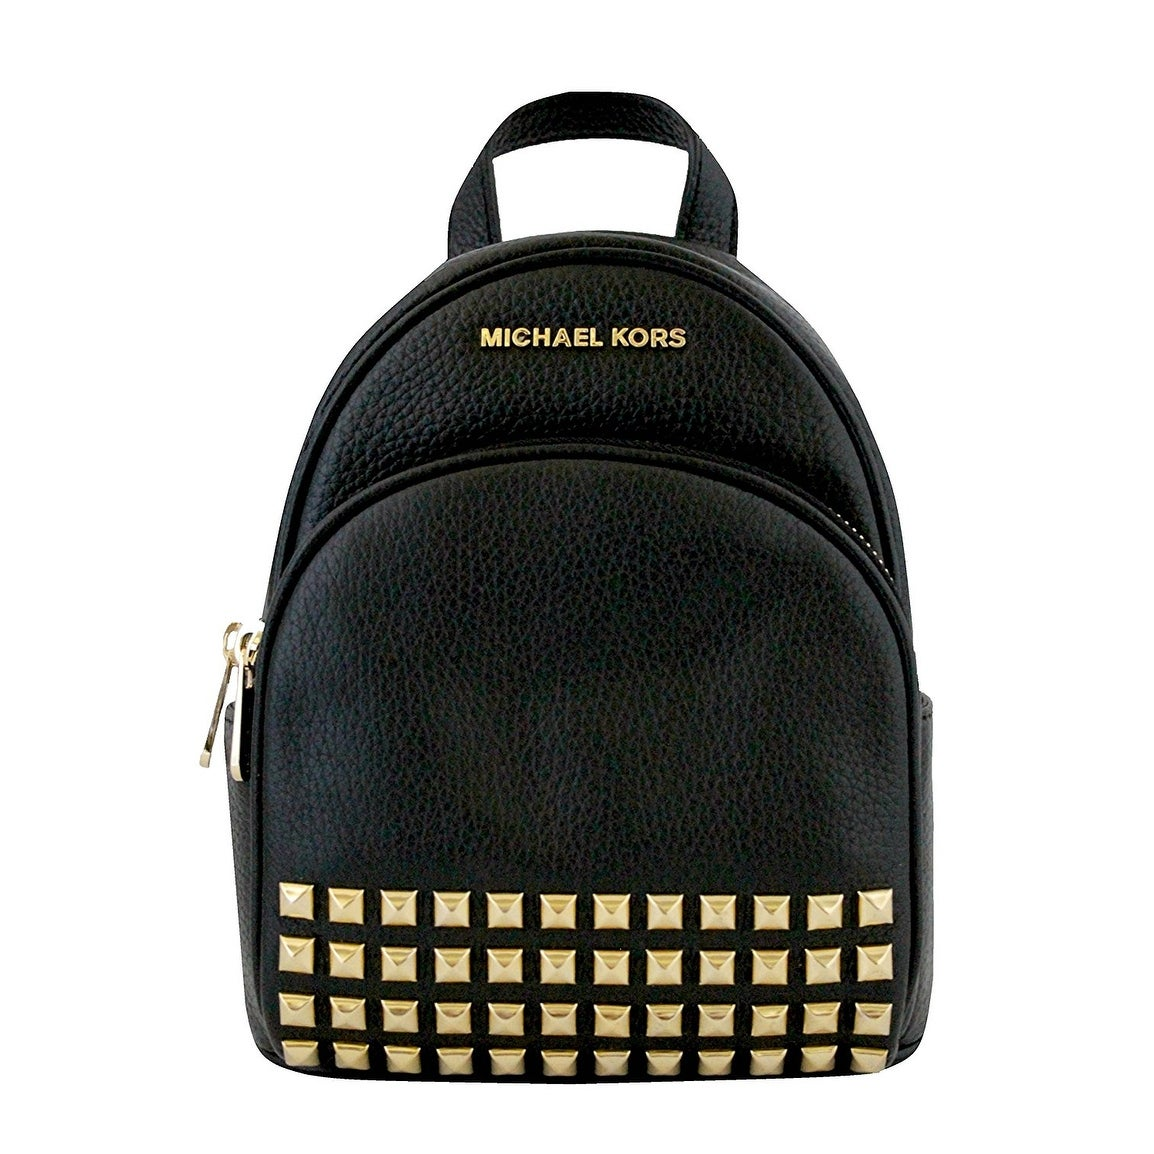 56cd4ced7b0c Shop Michael Kors Abbey Extra Small Studded Backpack In Black - Free  Shipping Today - Overstock - 21156931